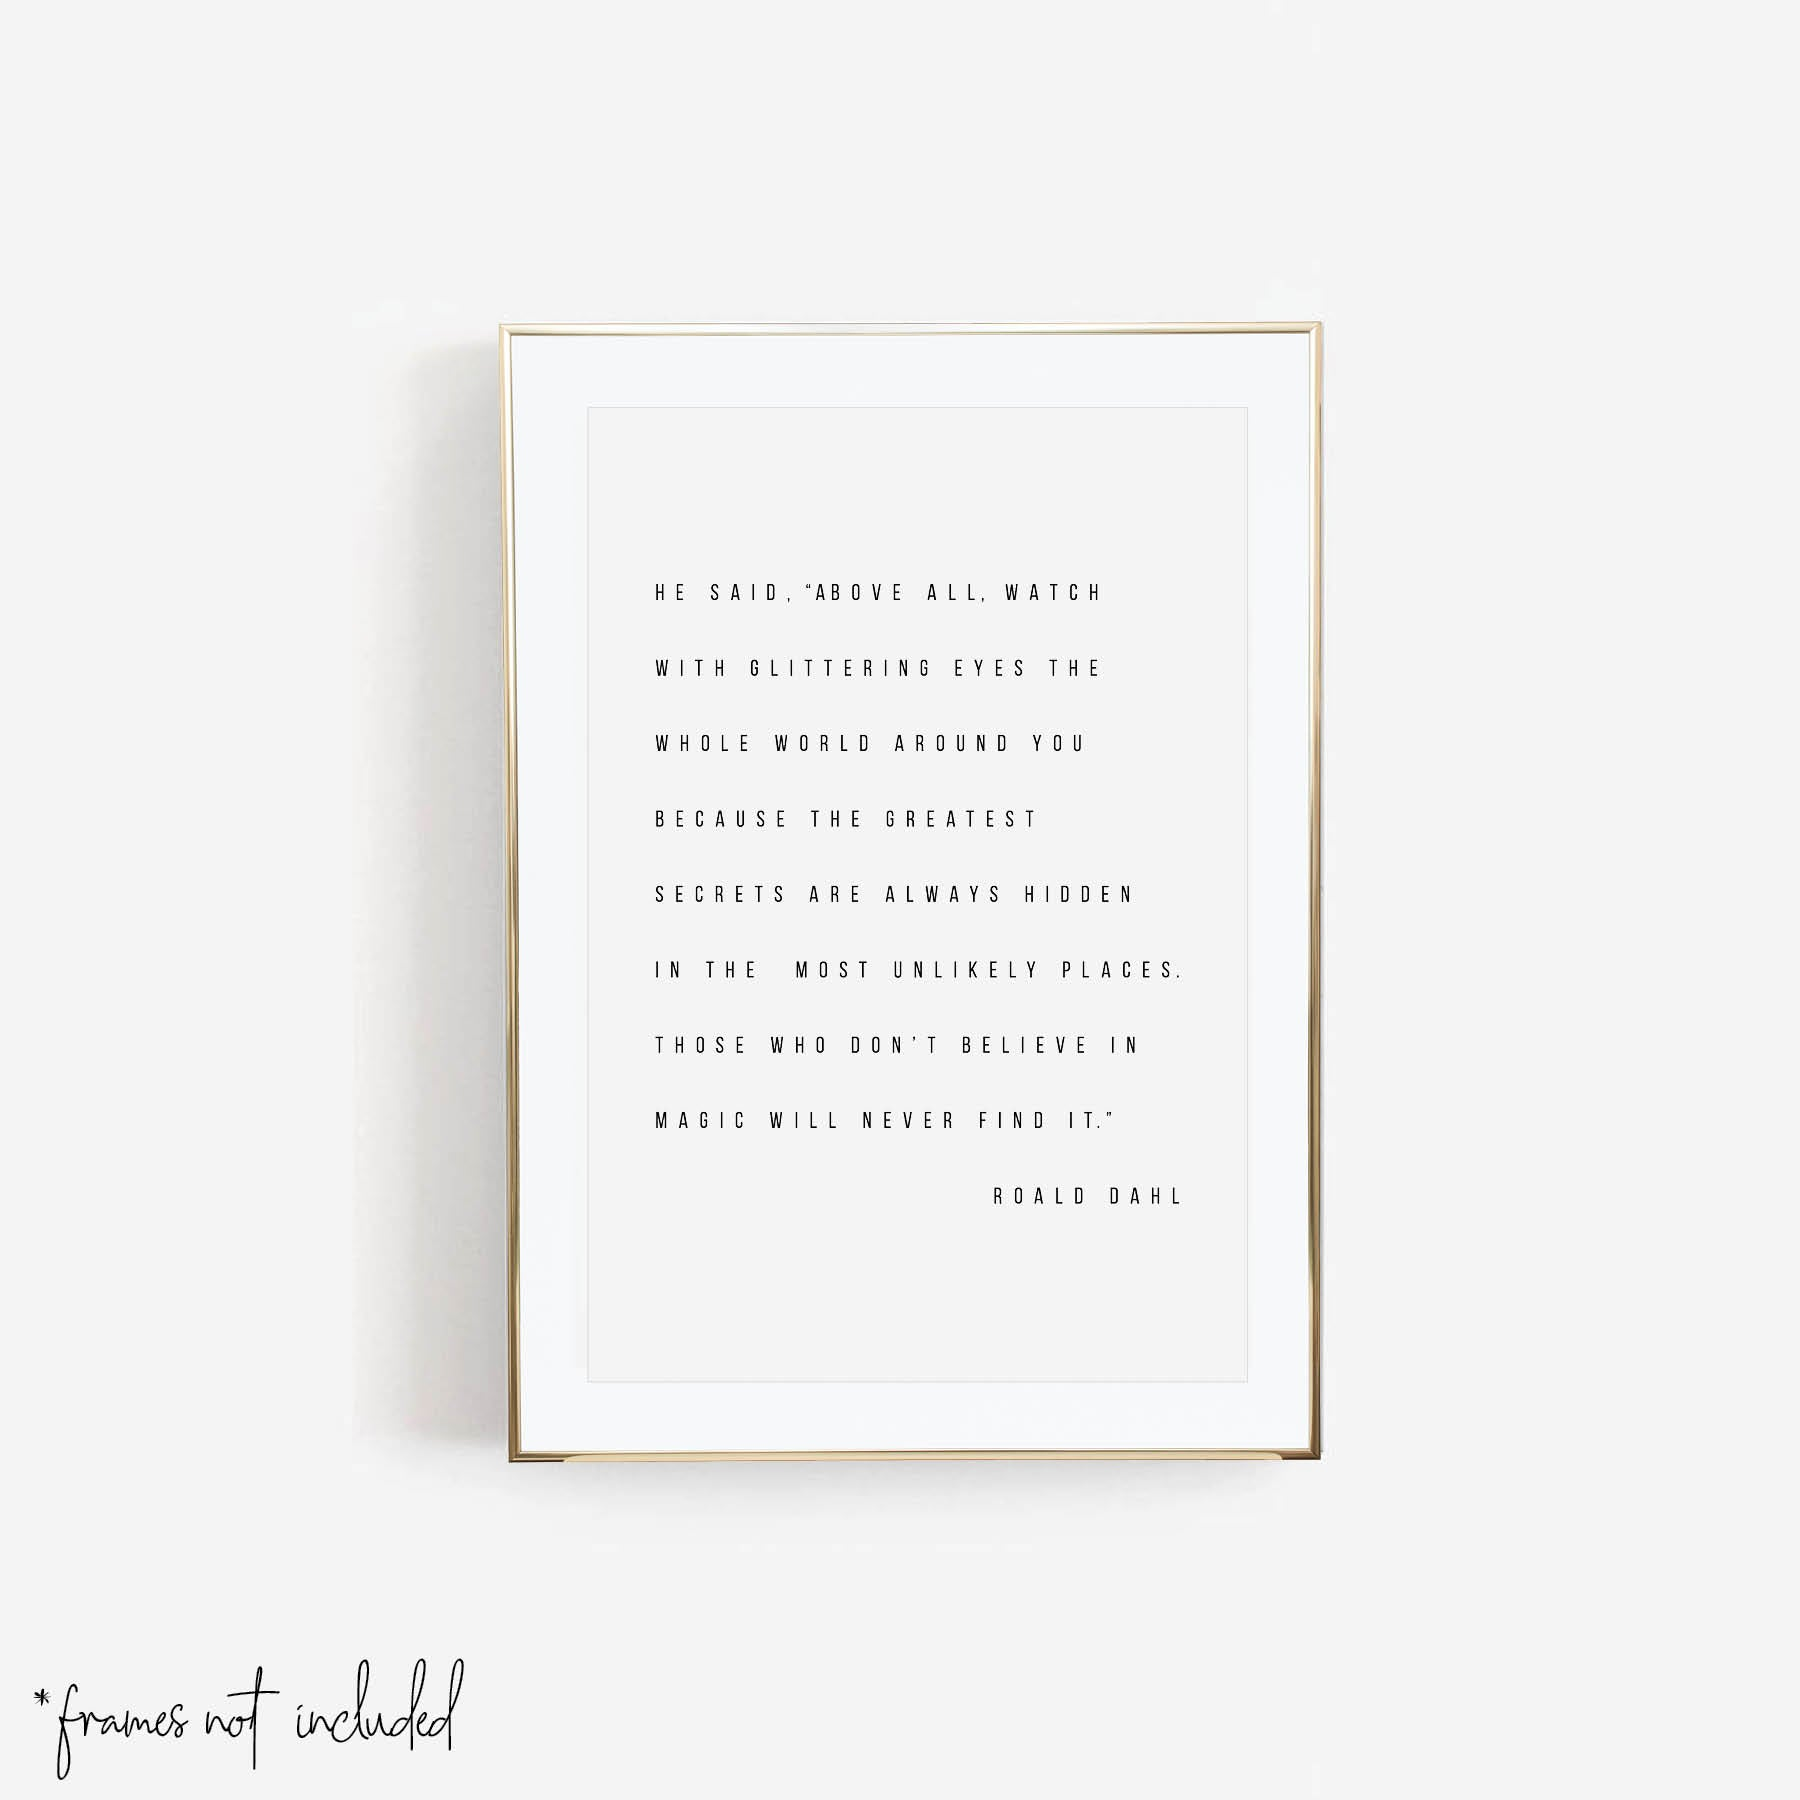 Above All, Watch with Glittering Eyes ... -Roald Dahl Quote Print - Typologie Paper Co